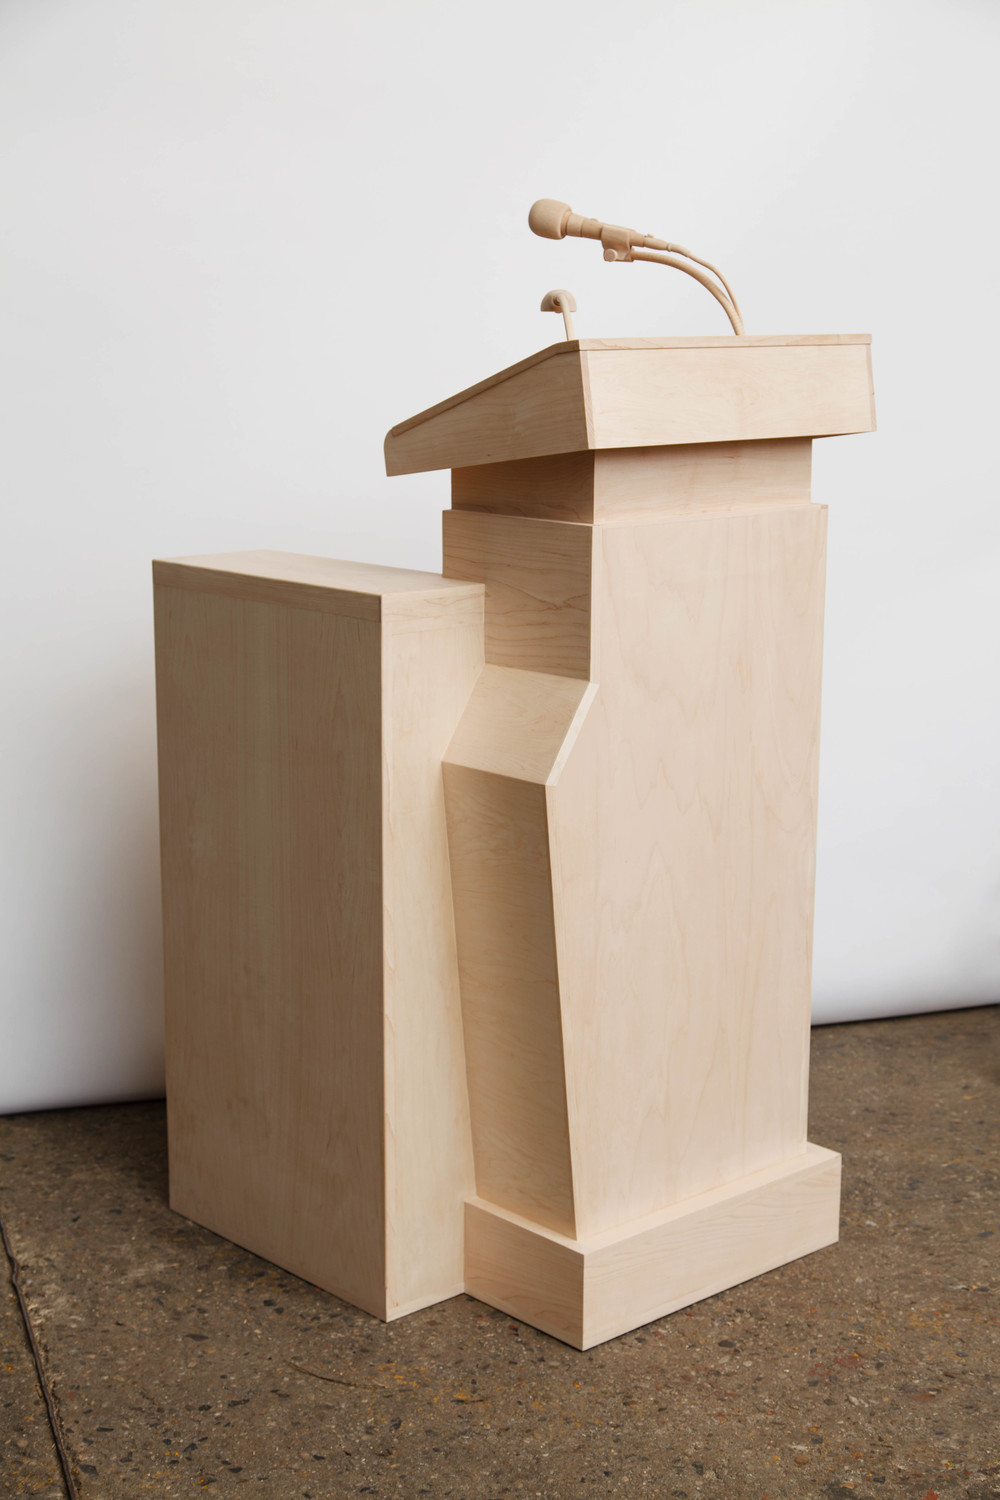 revolution, 2014, Maple wood, 63 x 32 x 27 inches